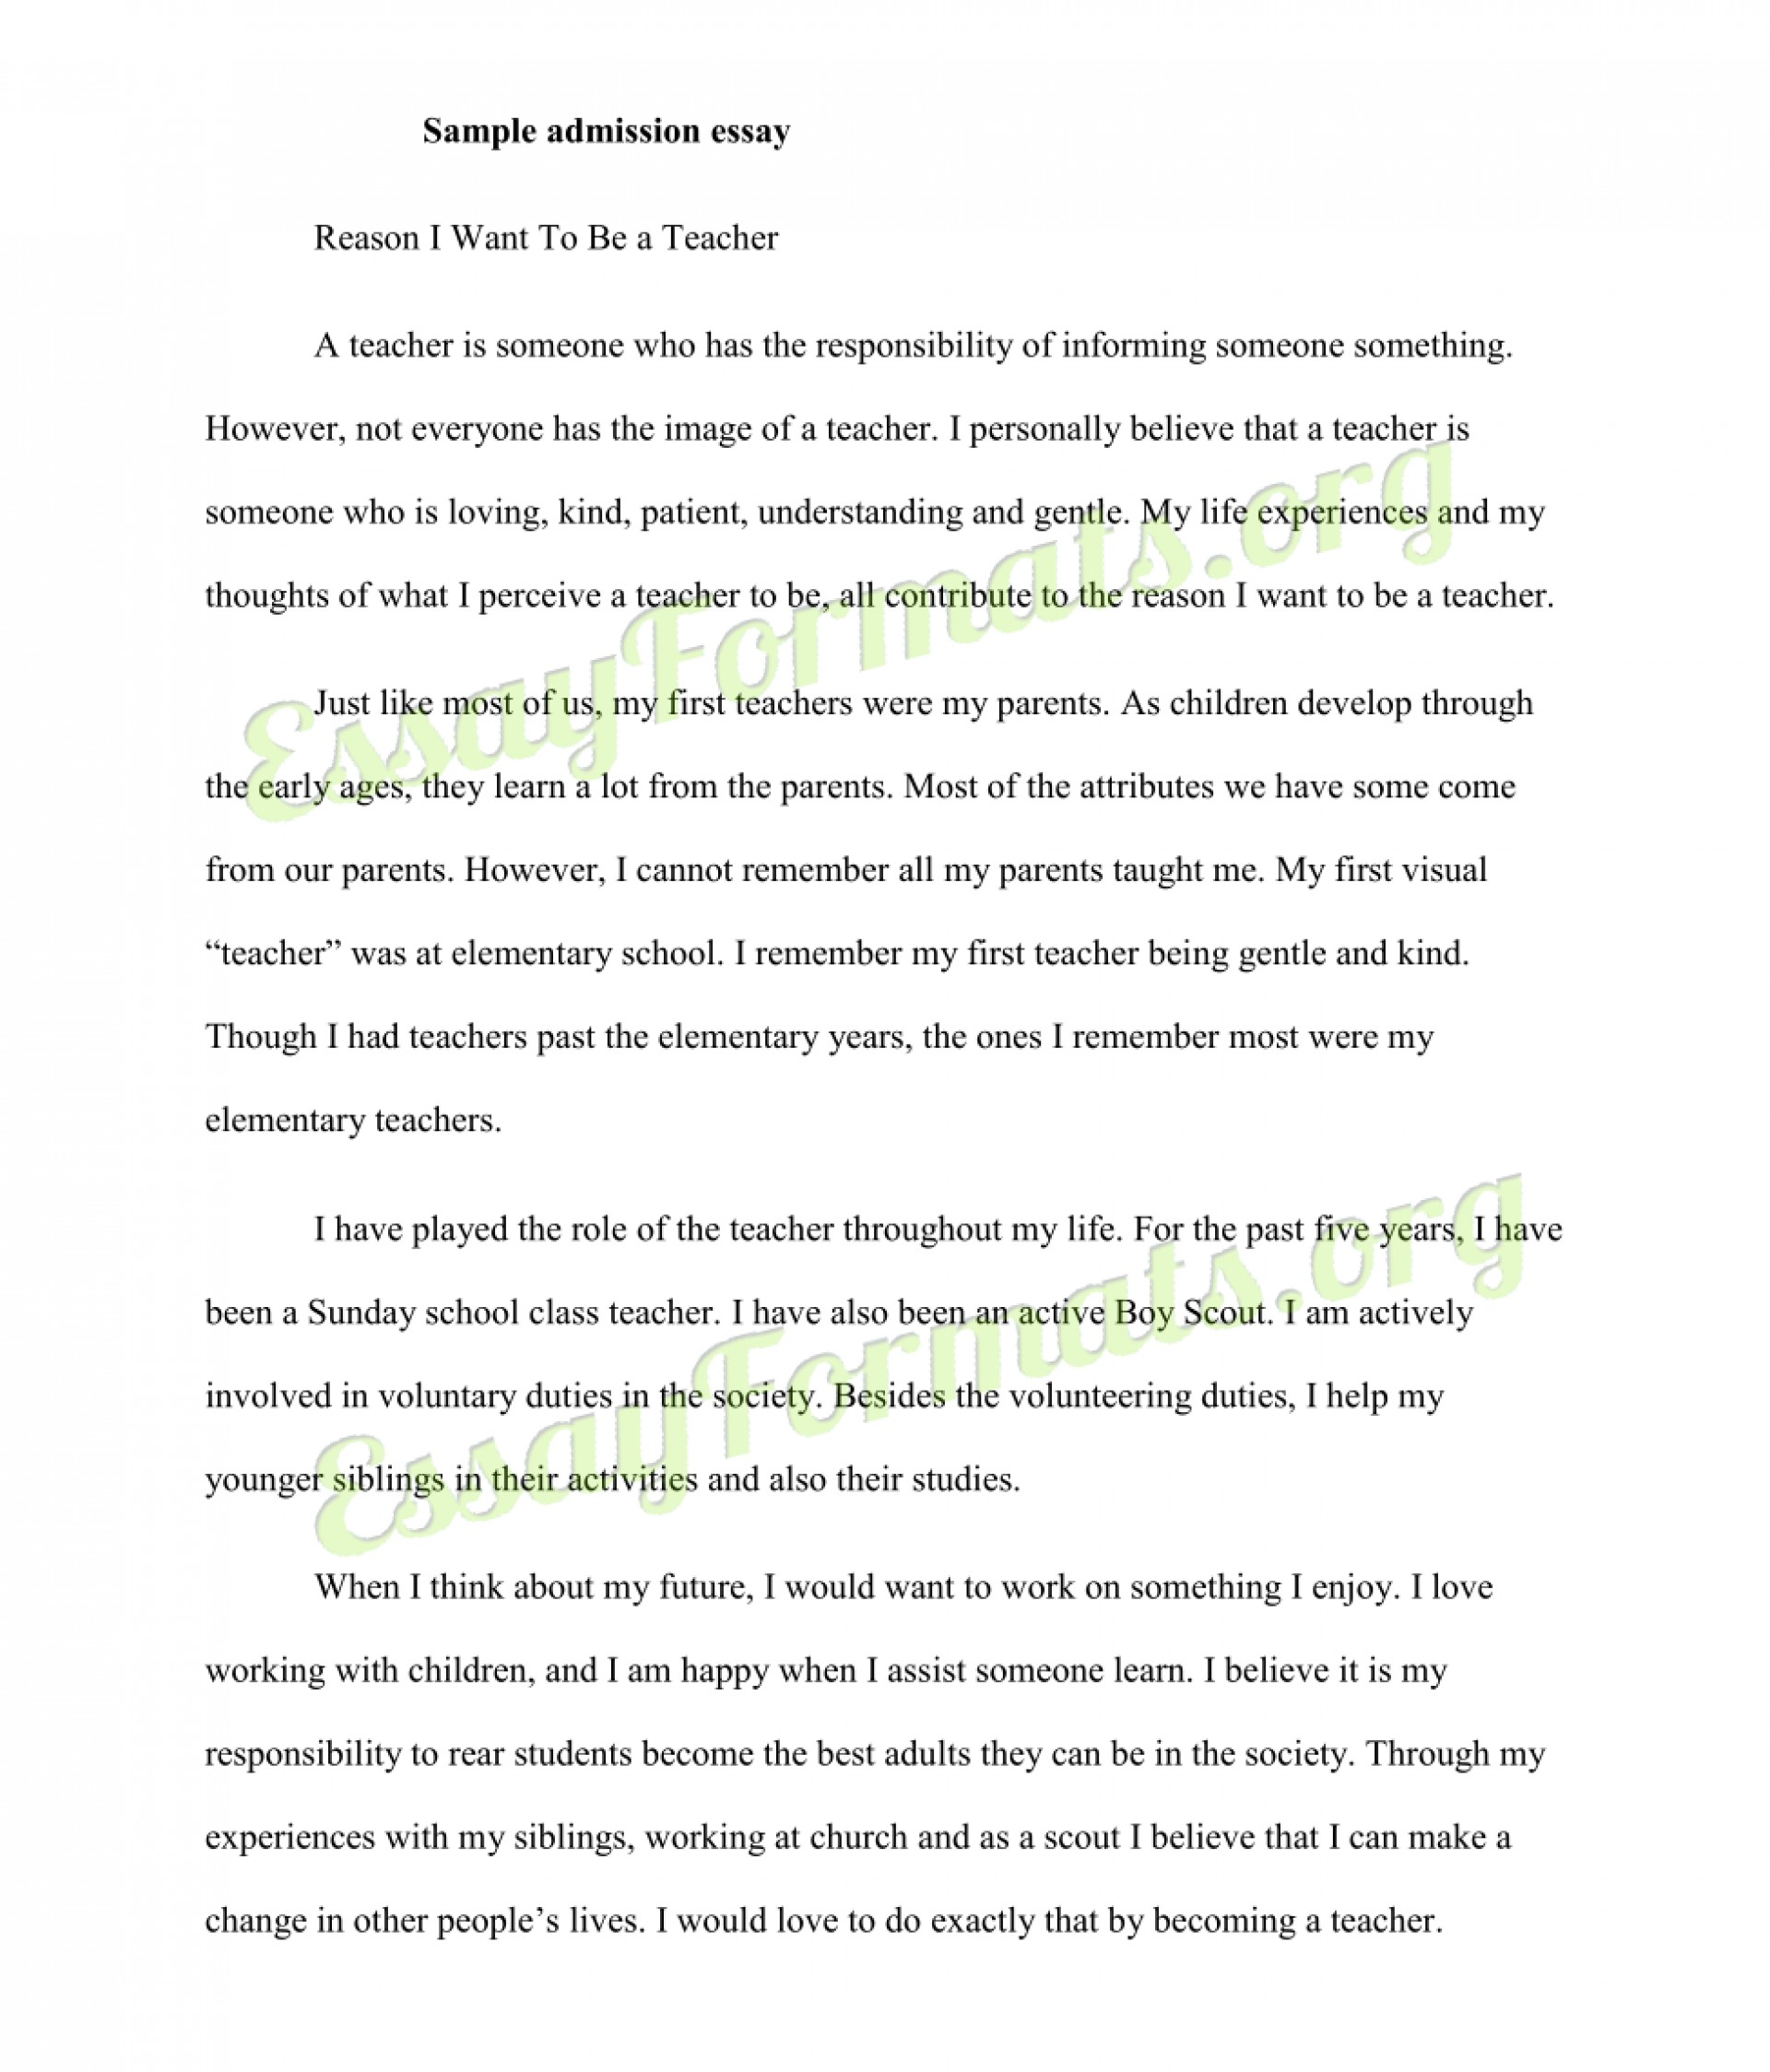 009 How To Format An Essay Example Awesome Apa Research Paper Title Page In Style 1920